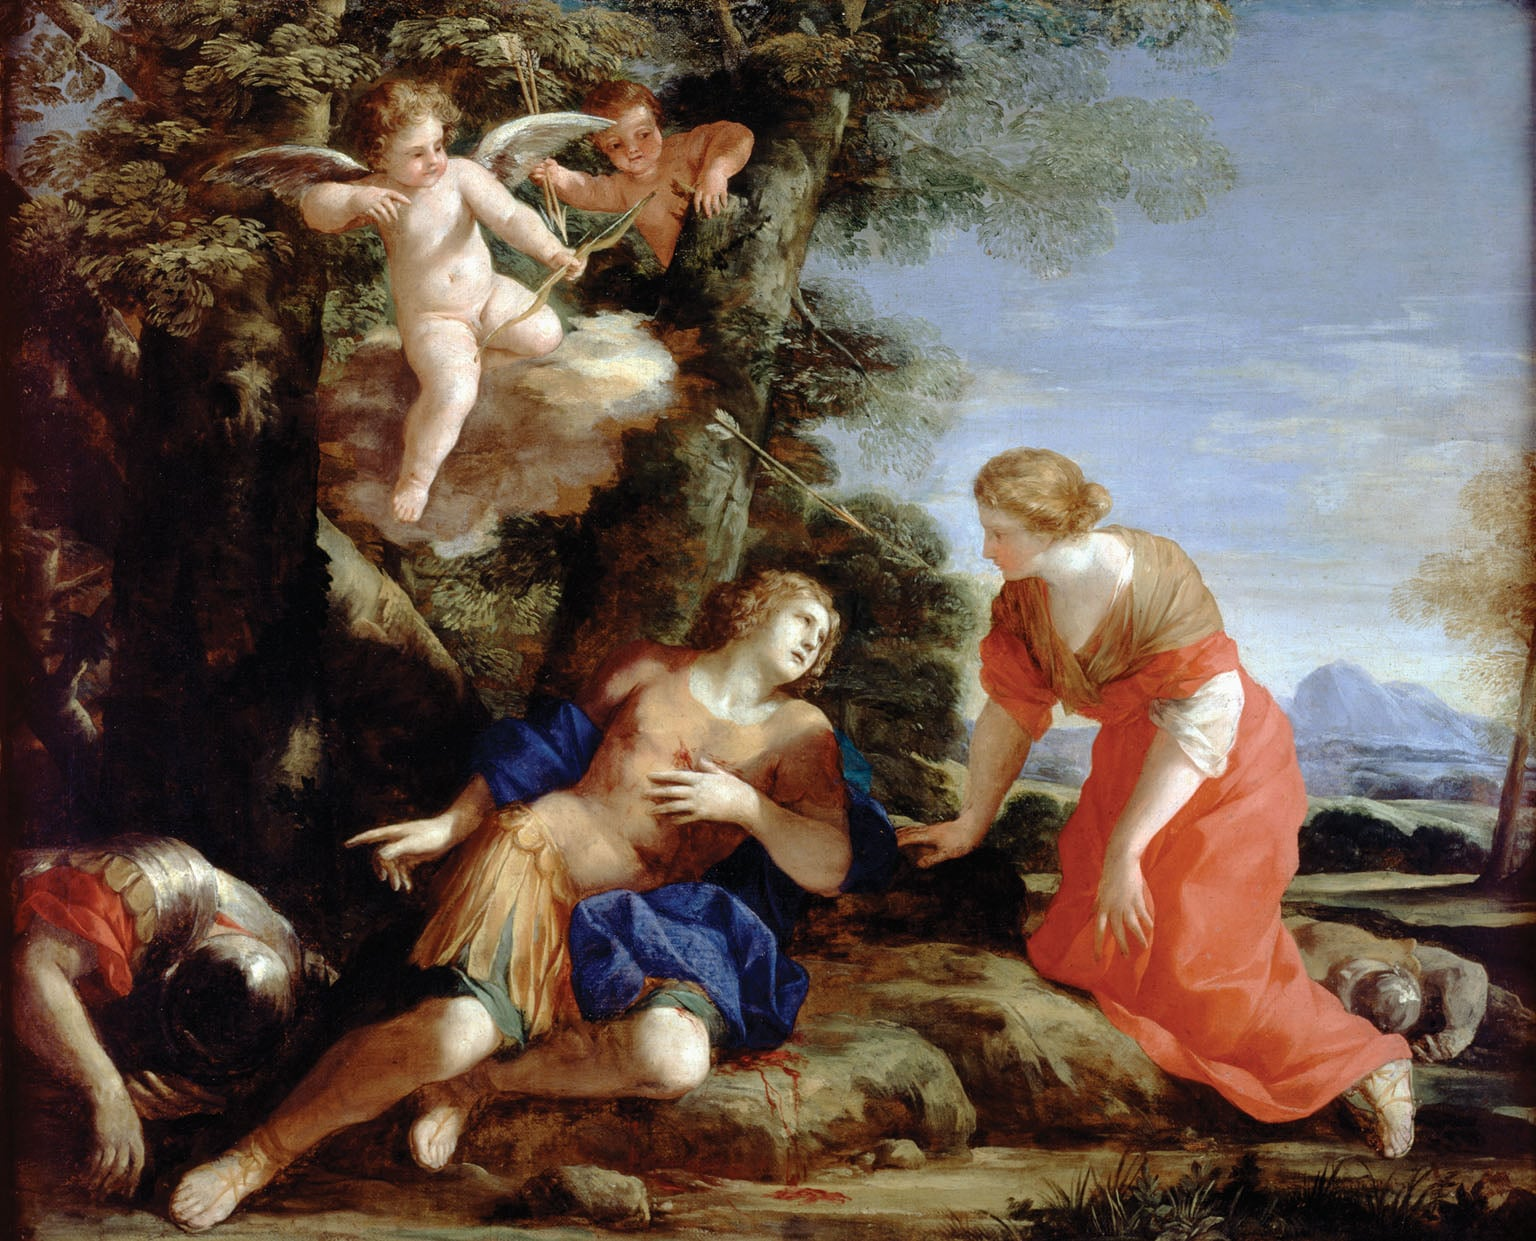 Angelica encountering the wounded Medoro